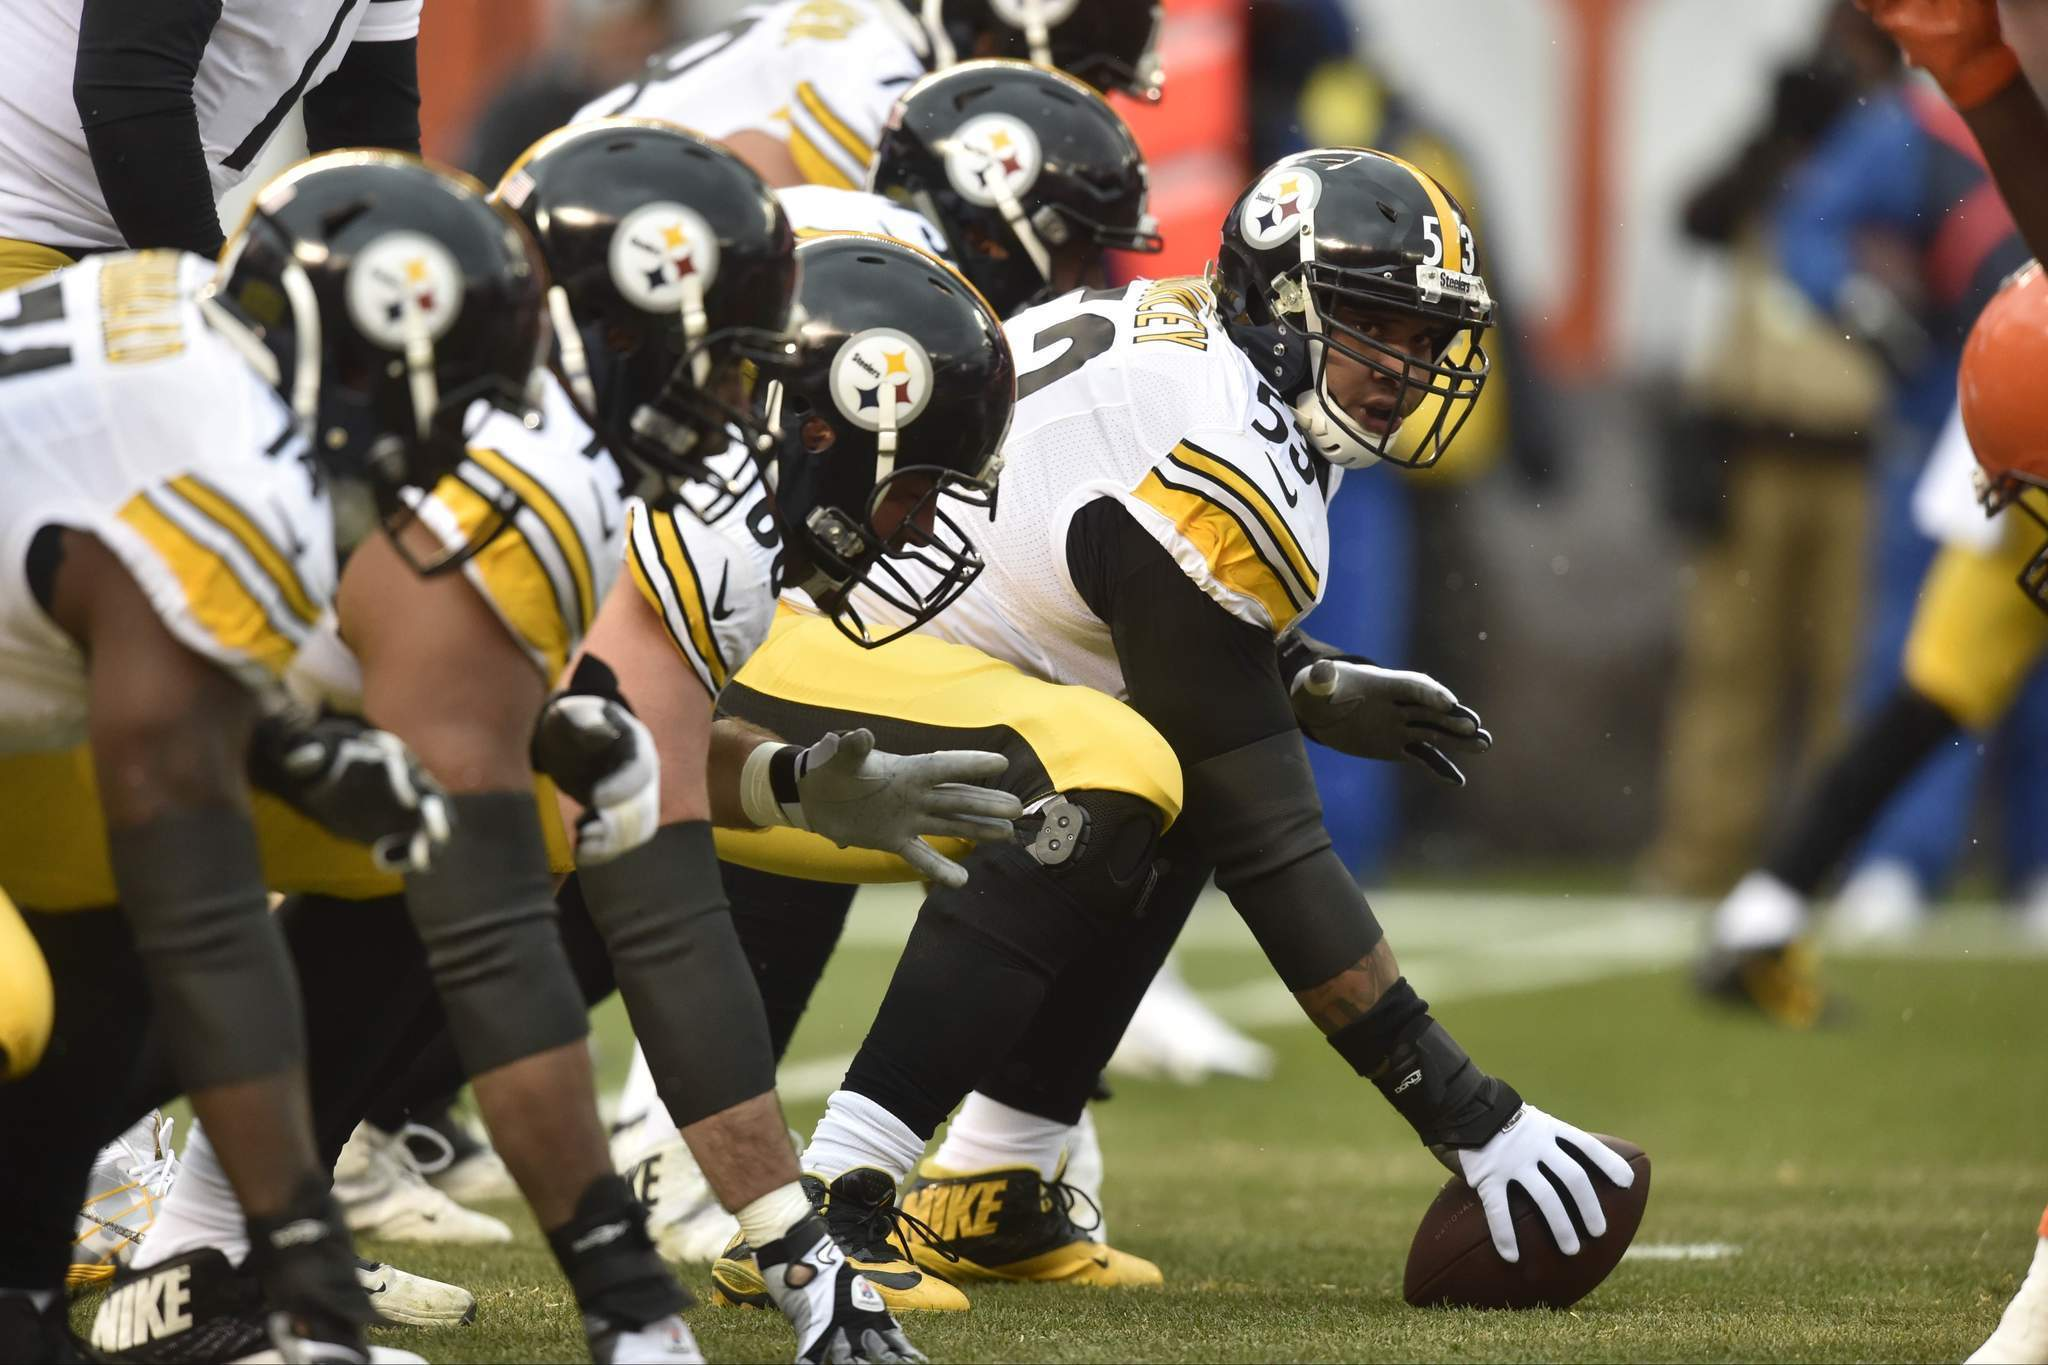 Maurkice Pouncey Steelers to stand for national anthem